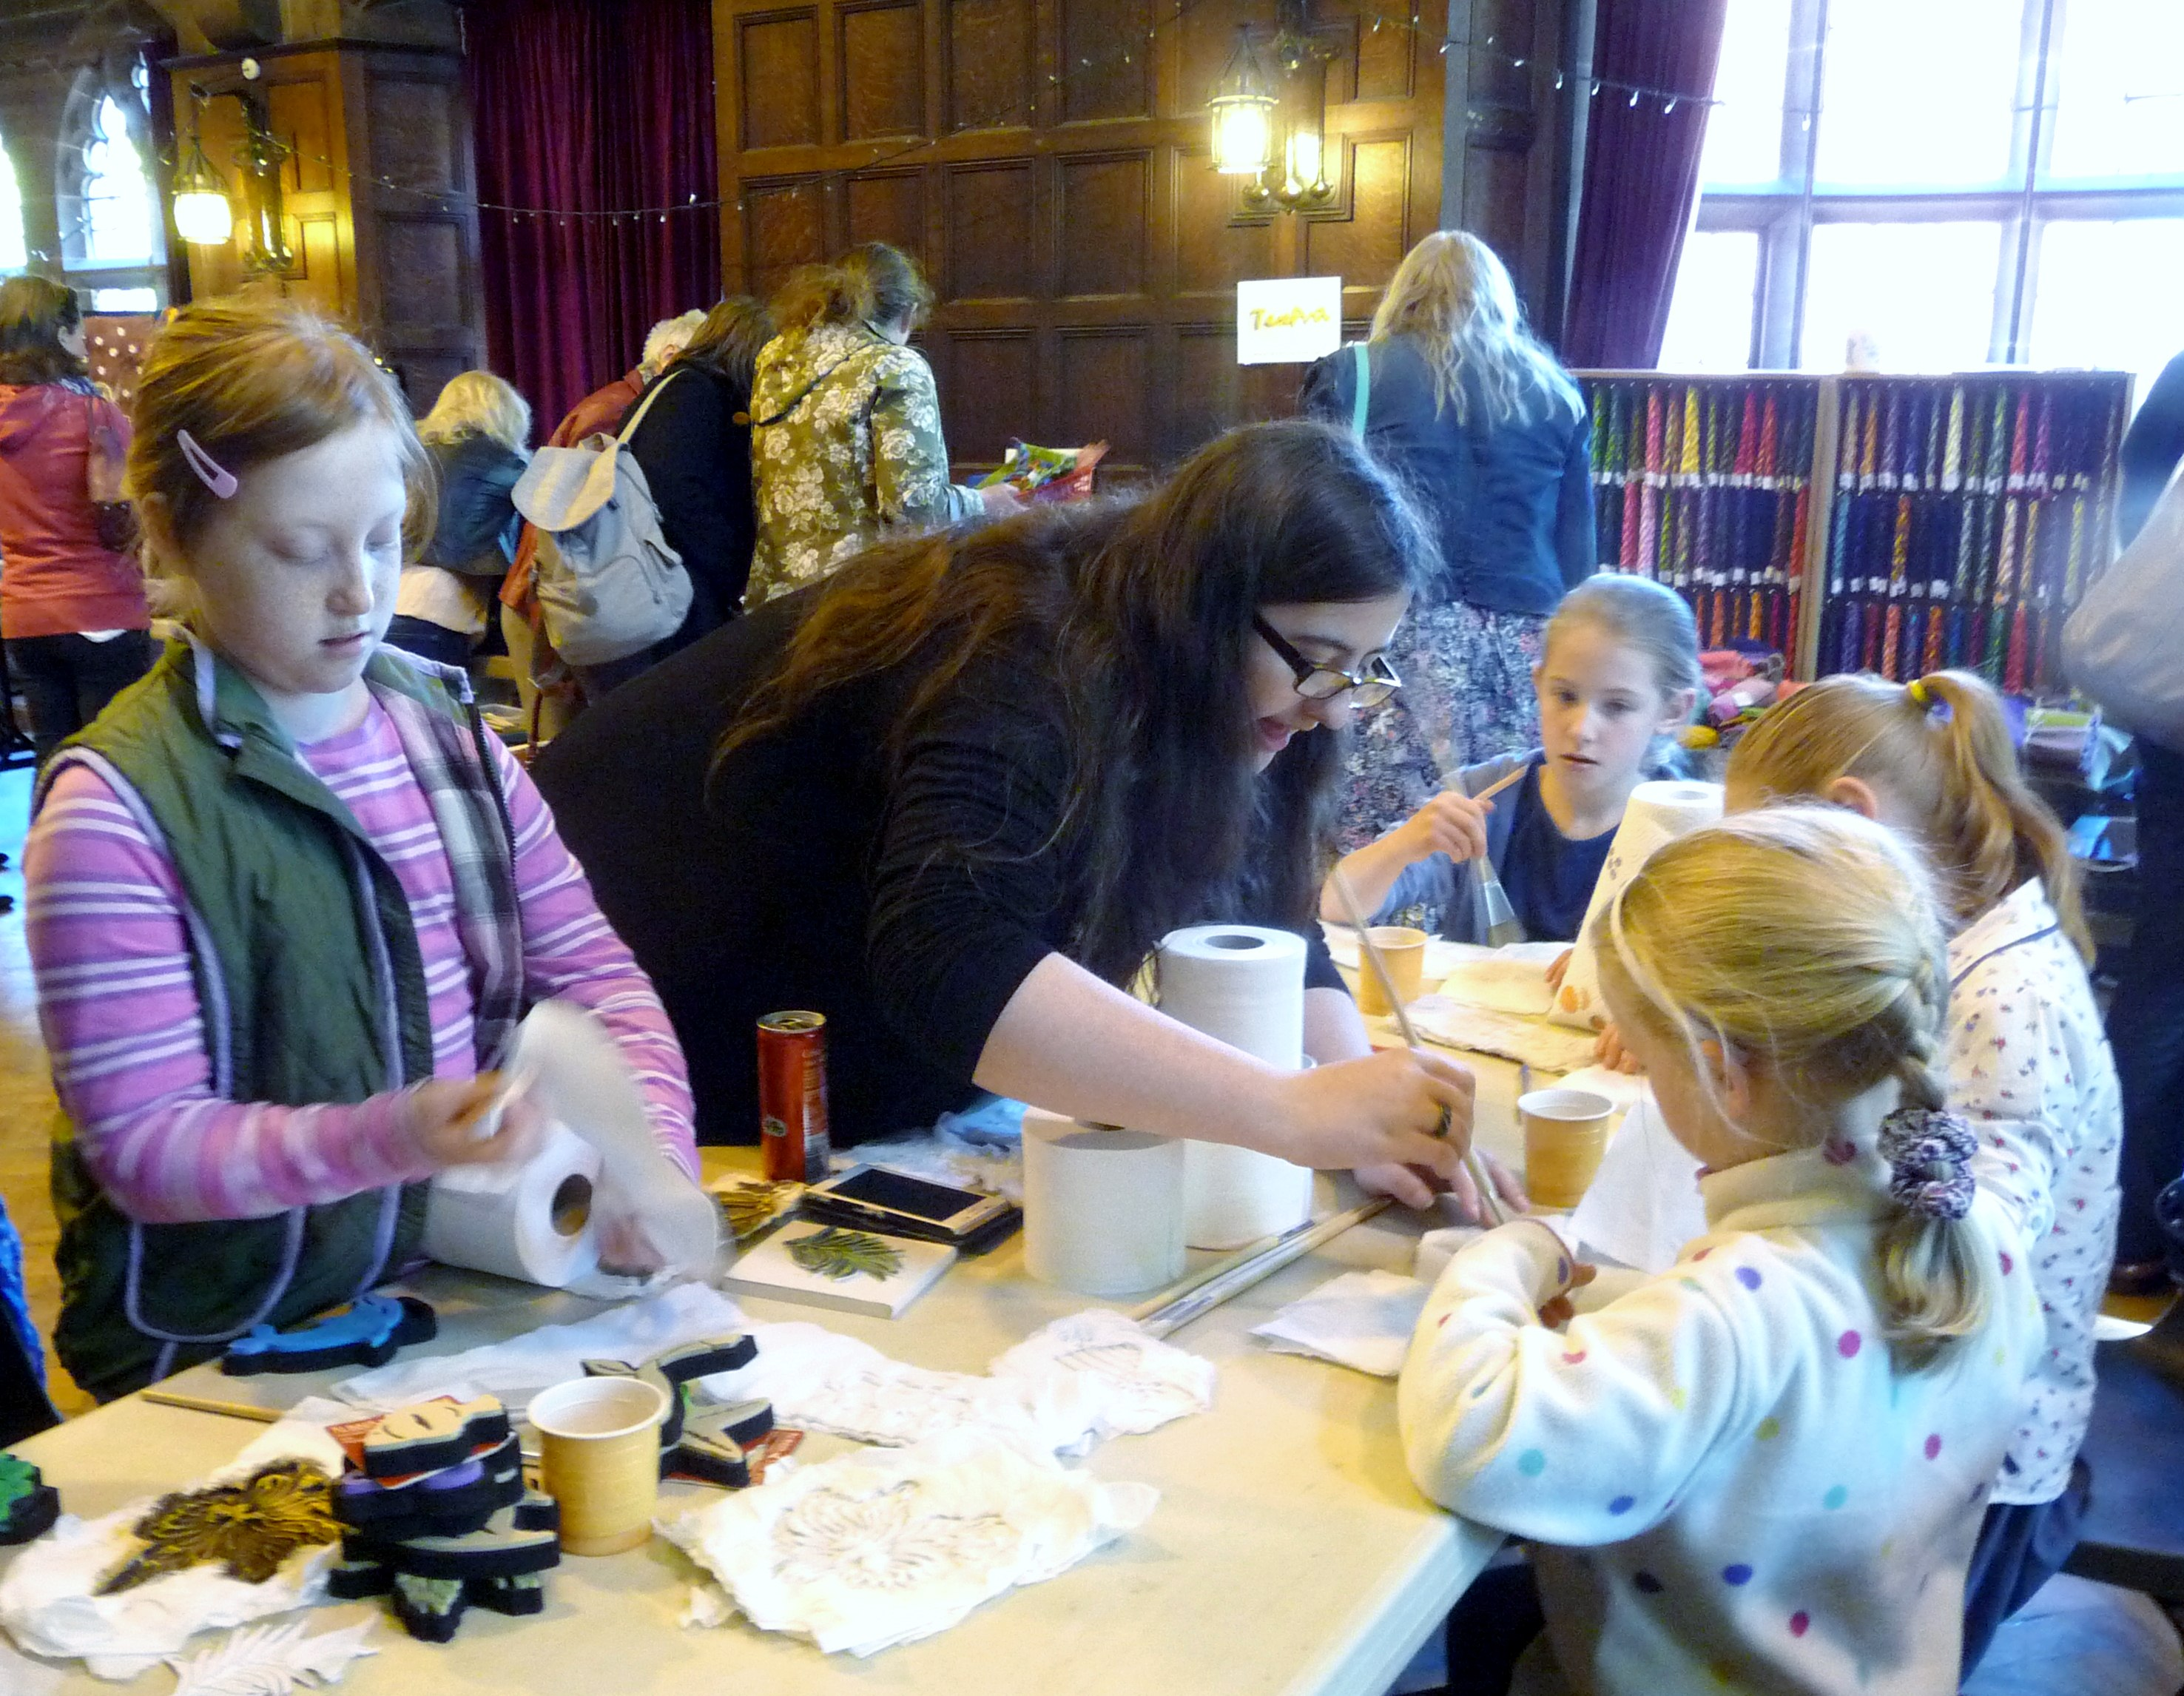 this is our MEG 'Make & Take' activity at 2015 Summer Tea Party. Sophie is showing how to make paper mache fish using rubber stamps as a base